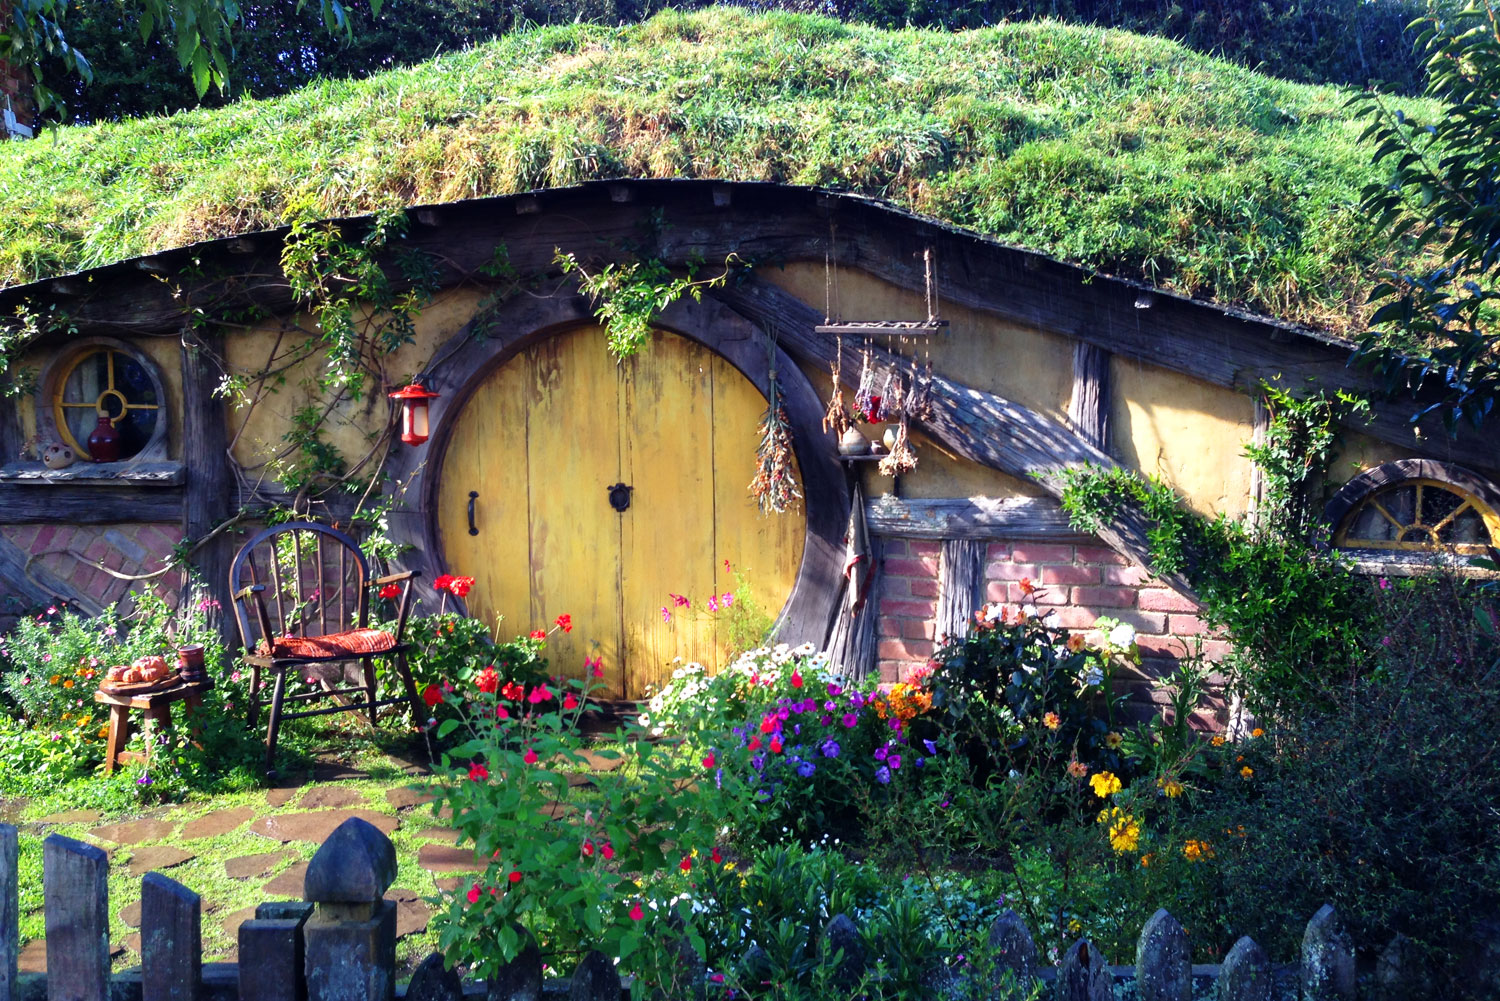 'Hobbiton' or 'The Shire', featured on the set of The Hobbit and the Lord of the Rings trilogy.